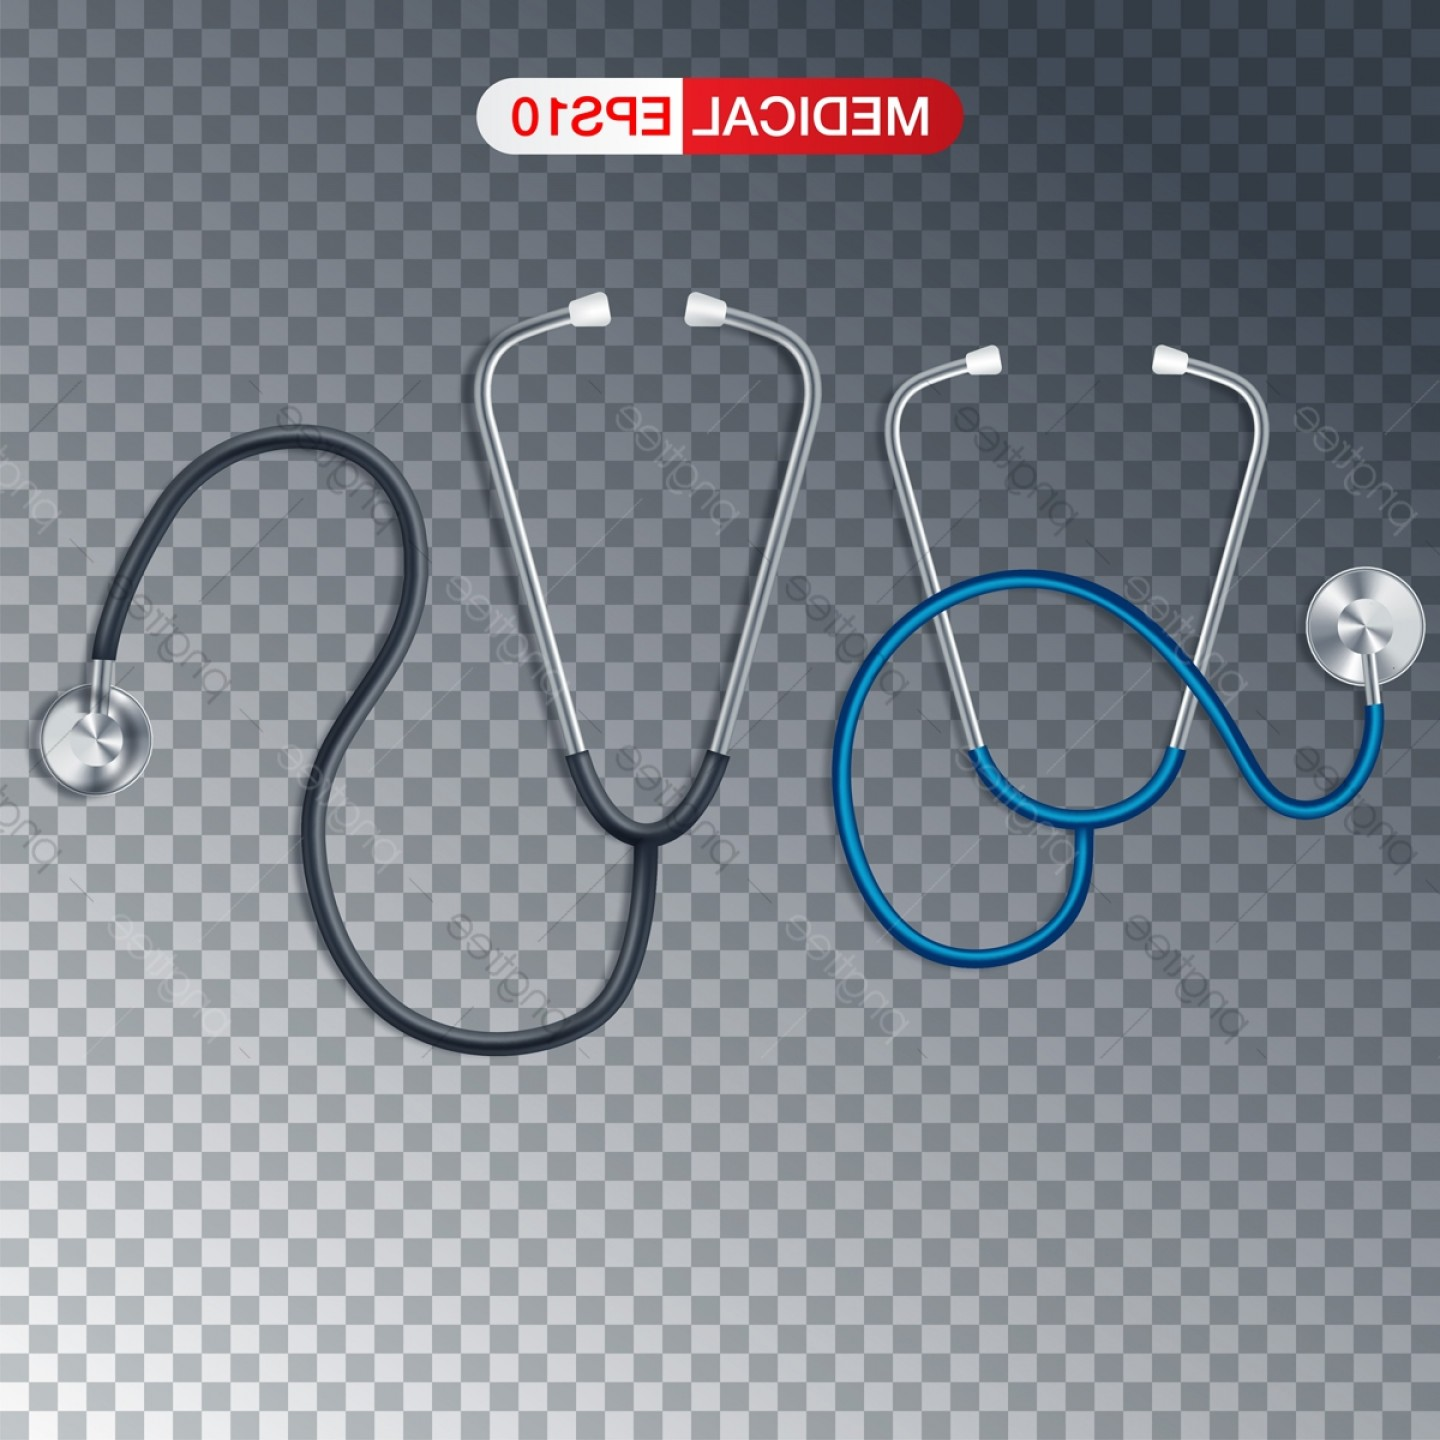 Heard Fishing Hook Vector: Medical Vector Background With Stethoscope Stethoscope Medical